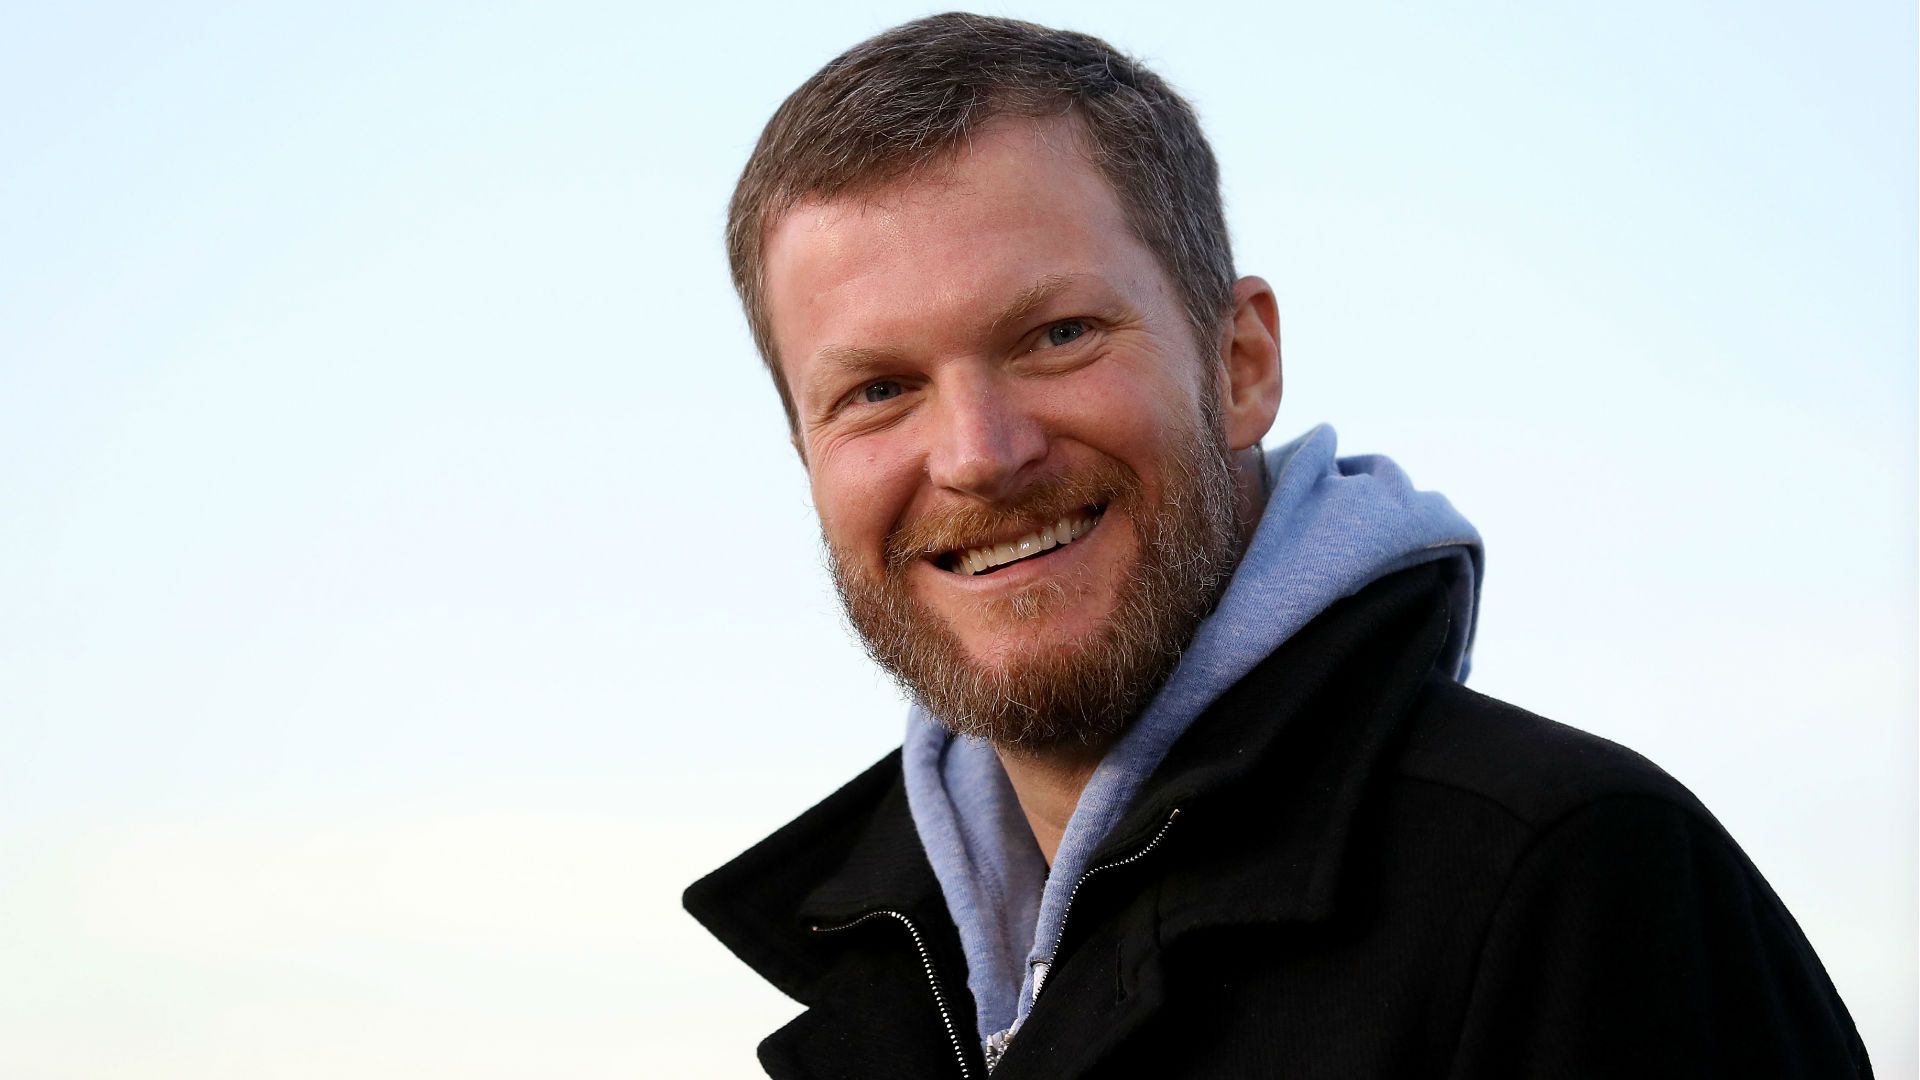 911 calls from Dale Earnhardt Jr. plane crash released